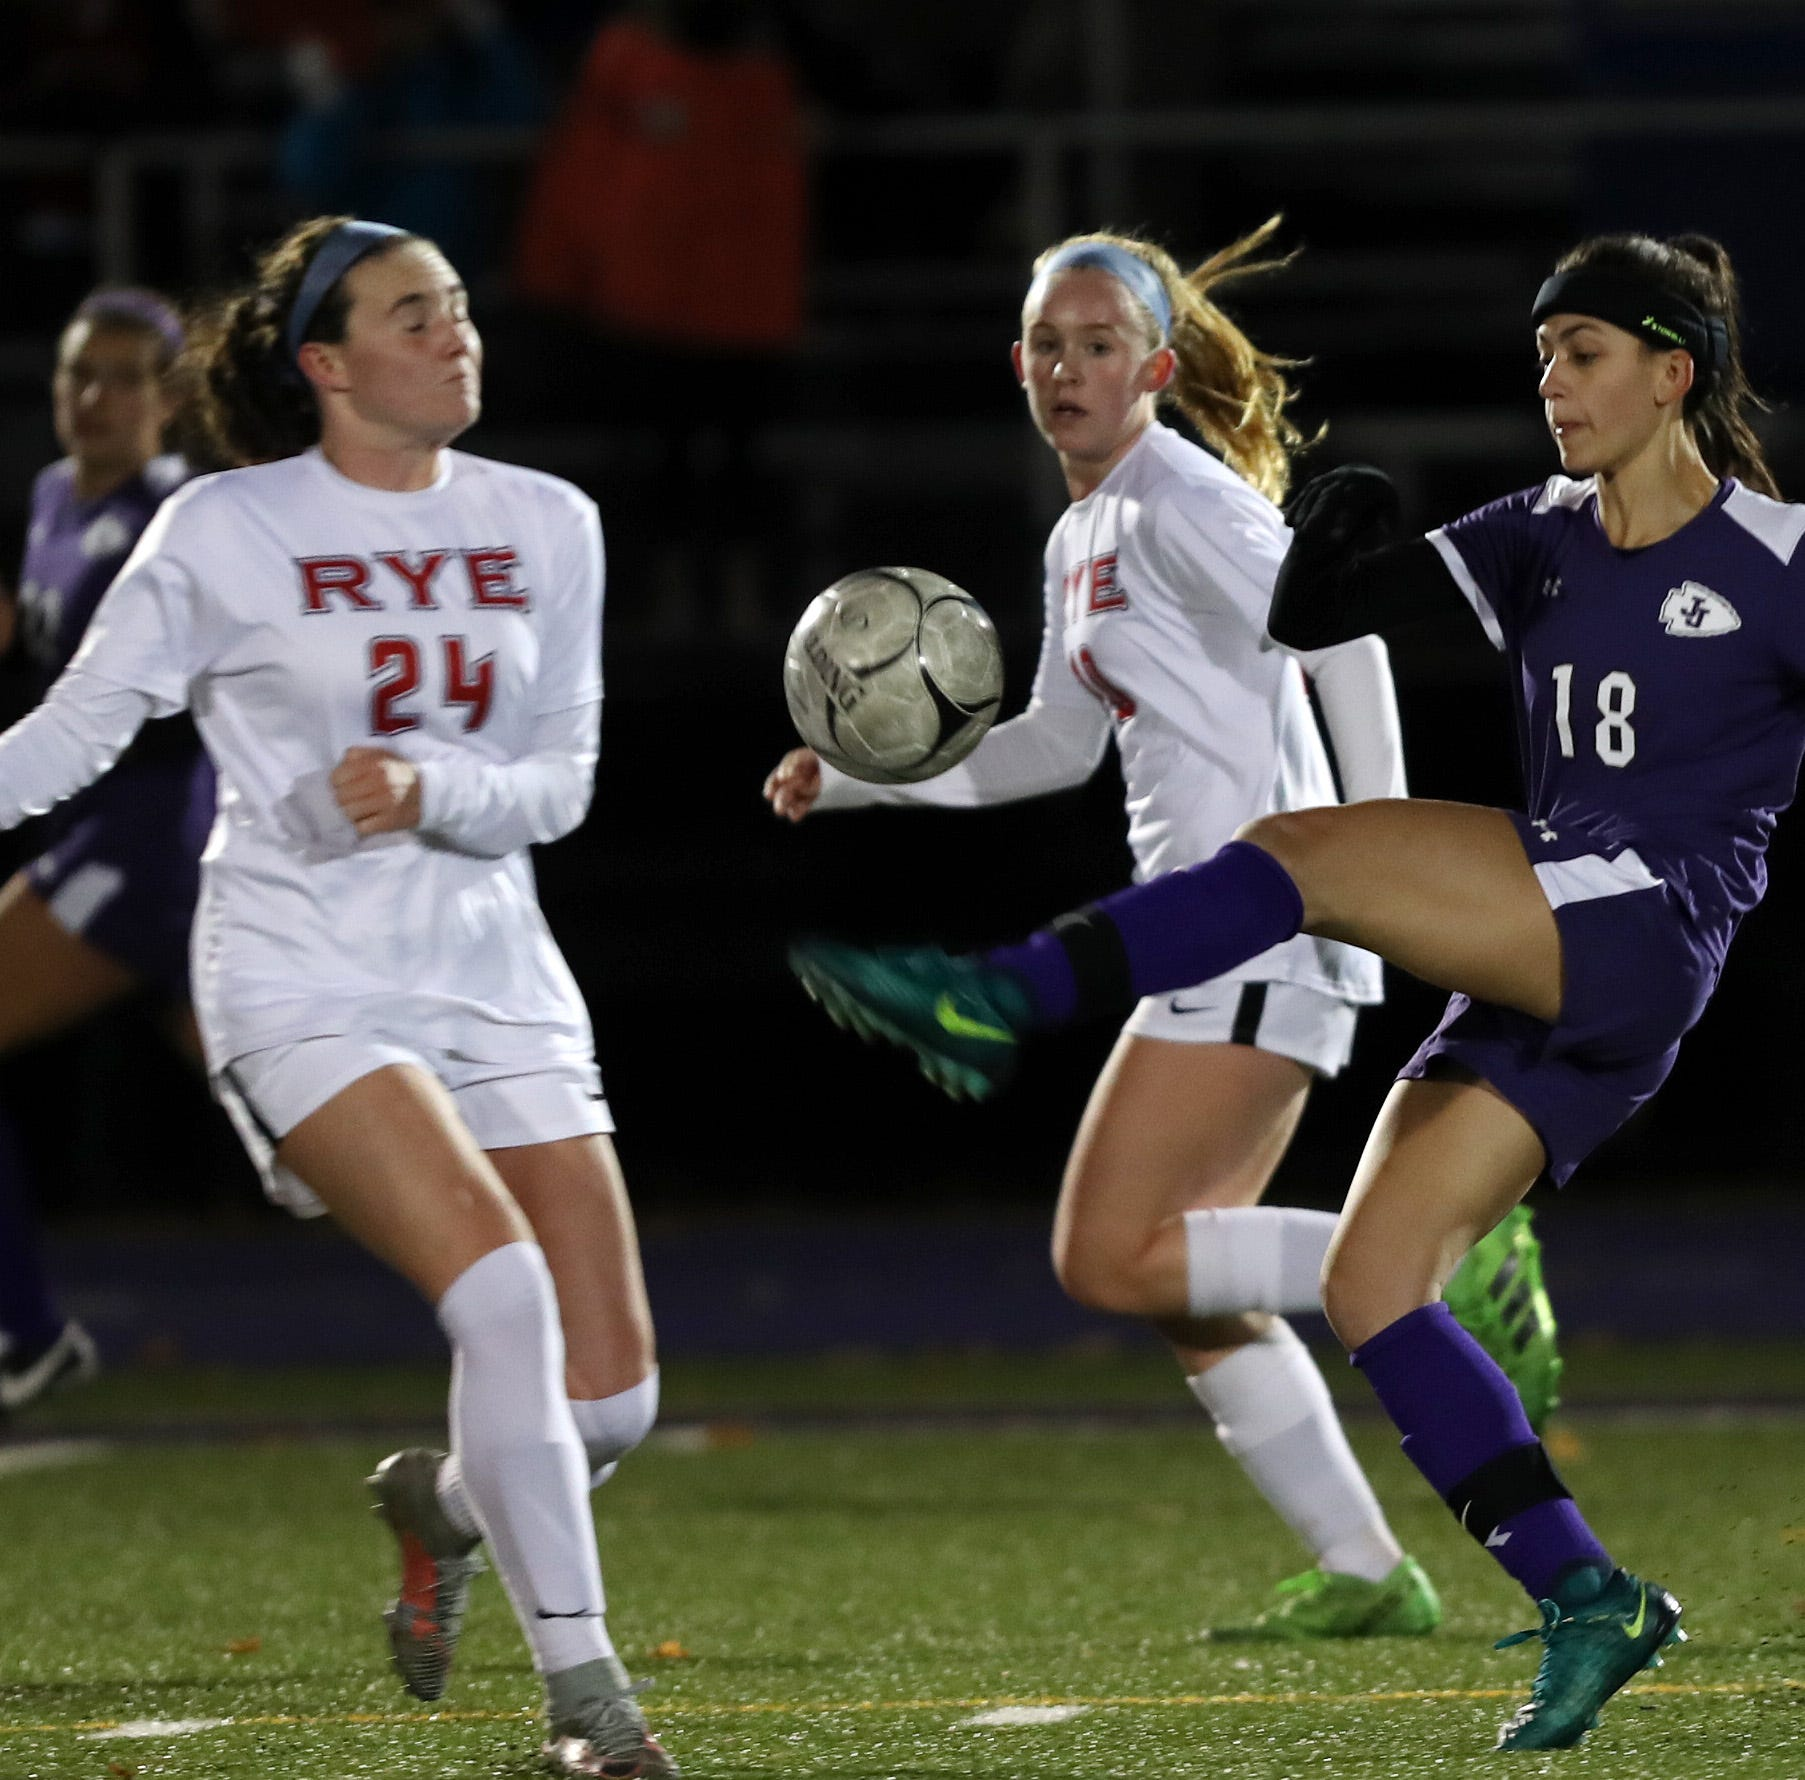 Girls soccer: 2018 all-section selections and award-winners